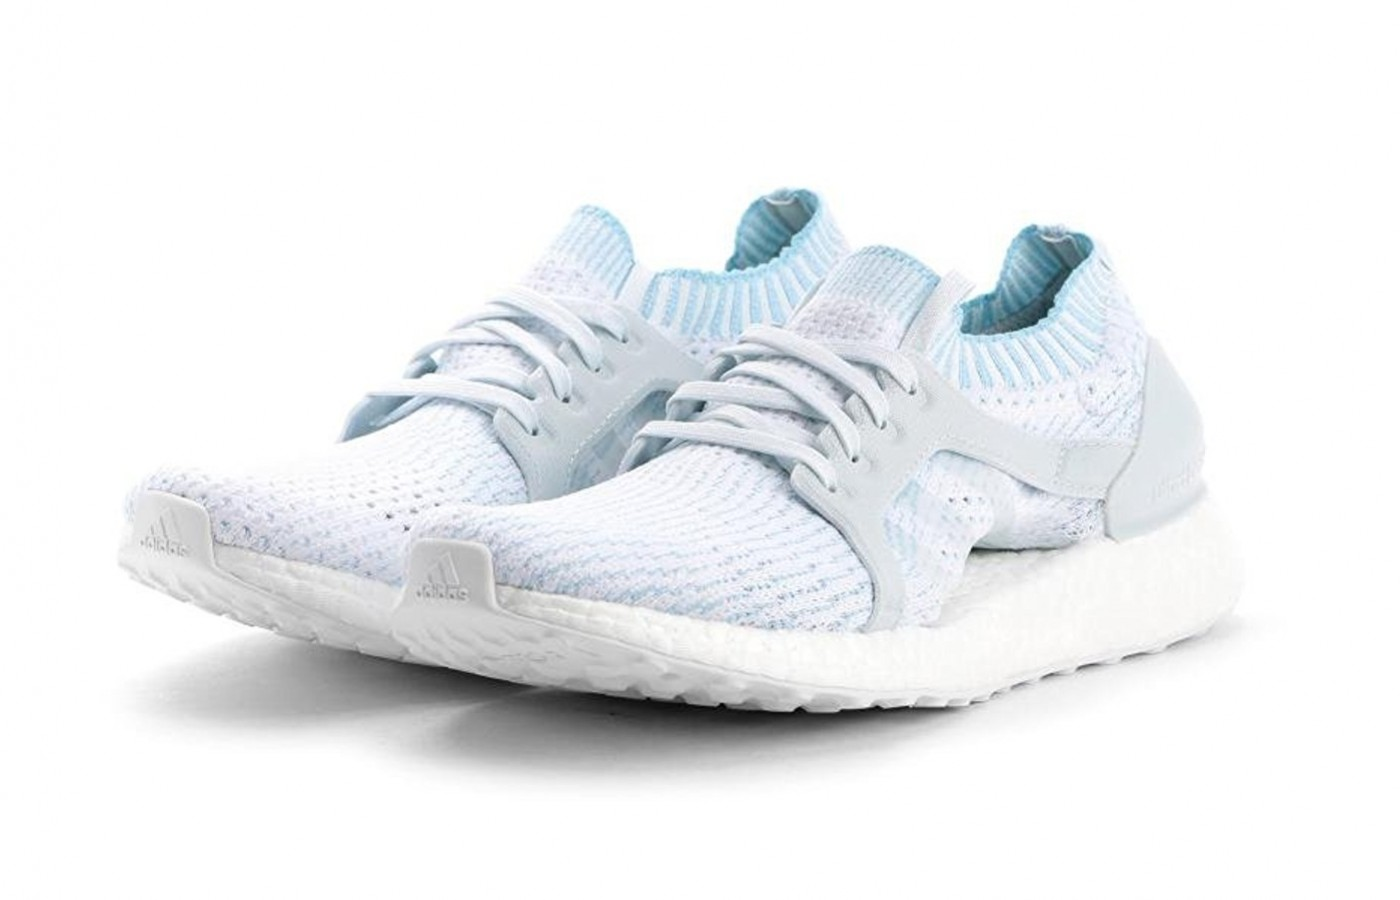 cbdaaa28e Adidas Ultraboost X Parley Tested for Performance - WalkJogRun